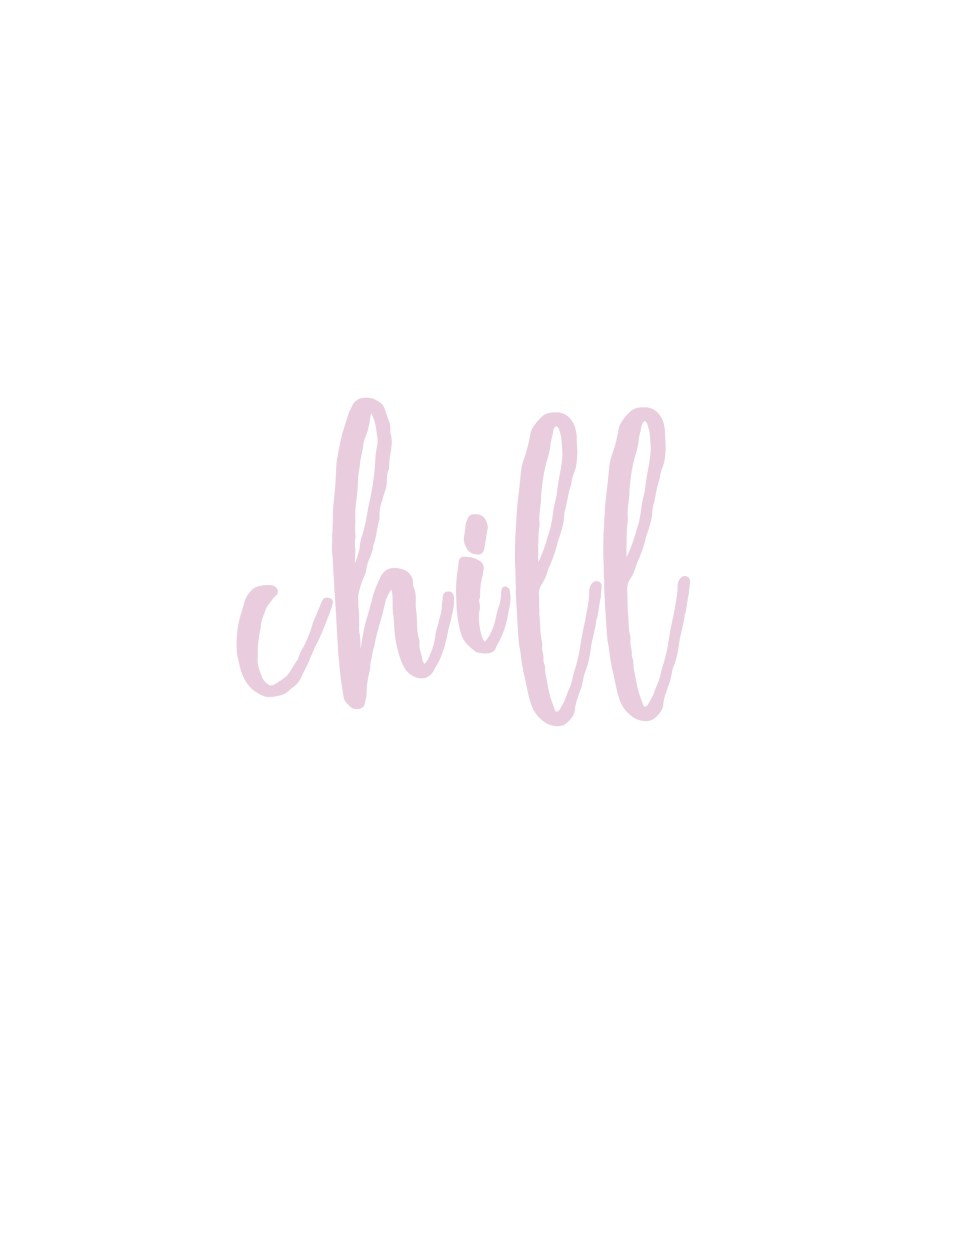 chill printable